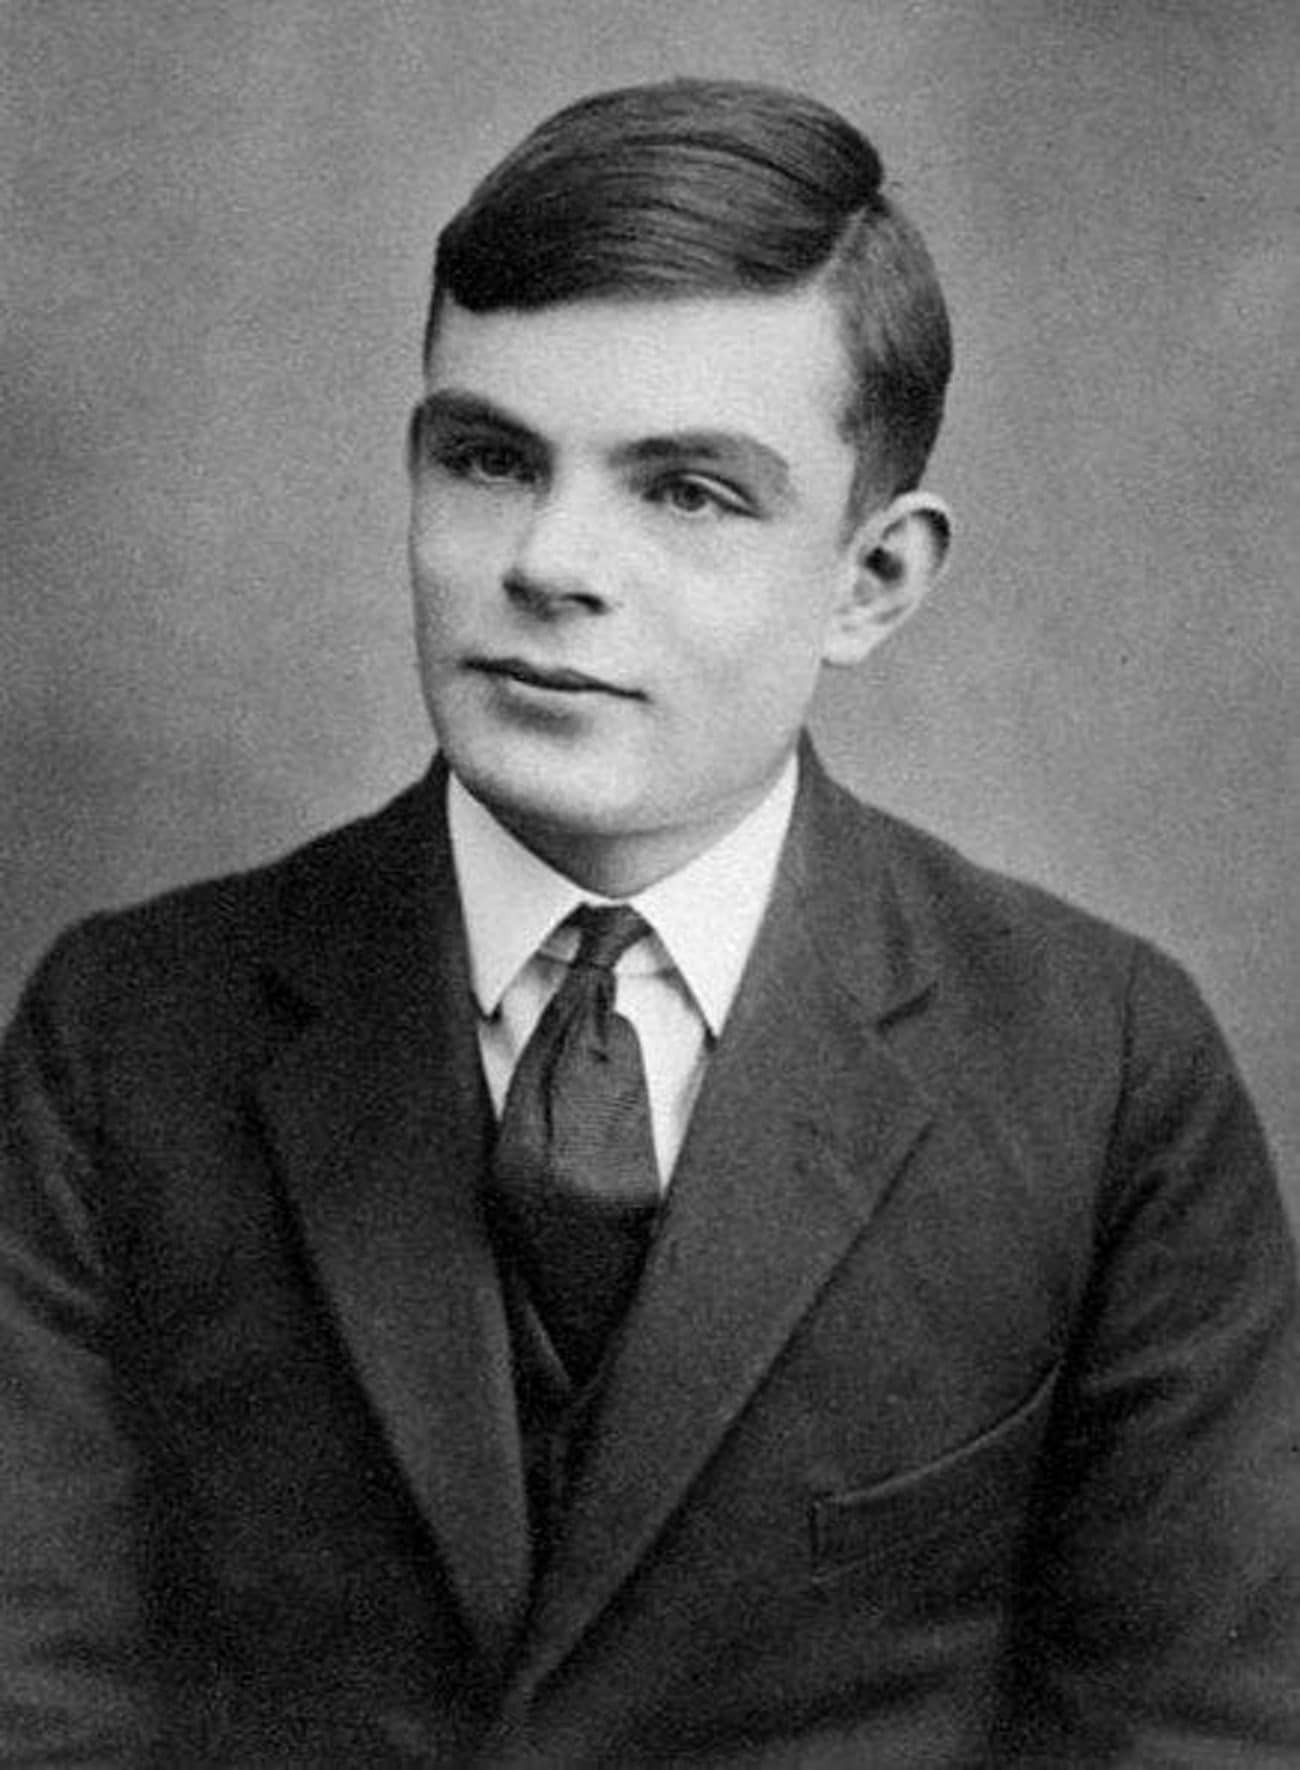 An undated portrait of computer science pioneer, Alan Turing